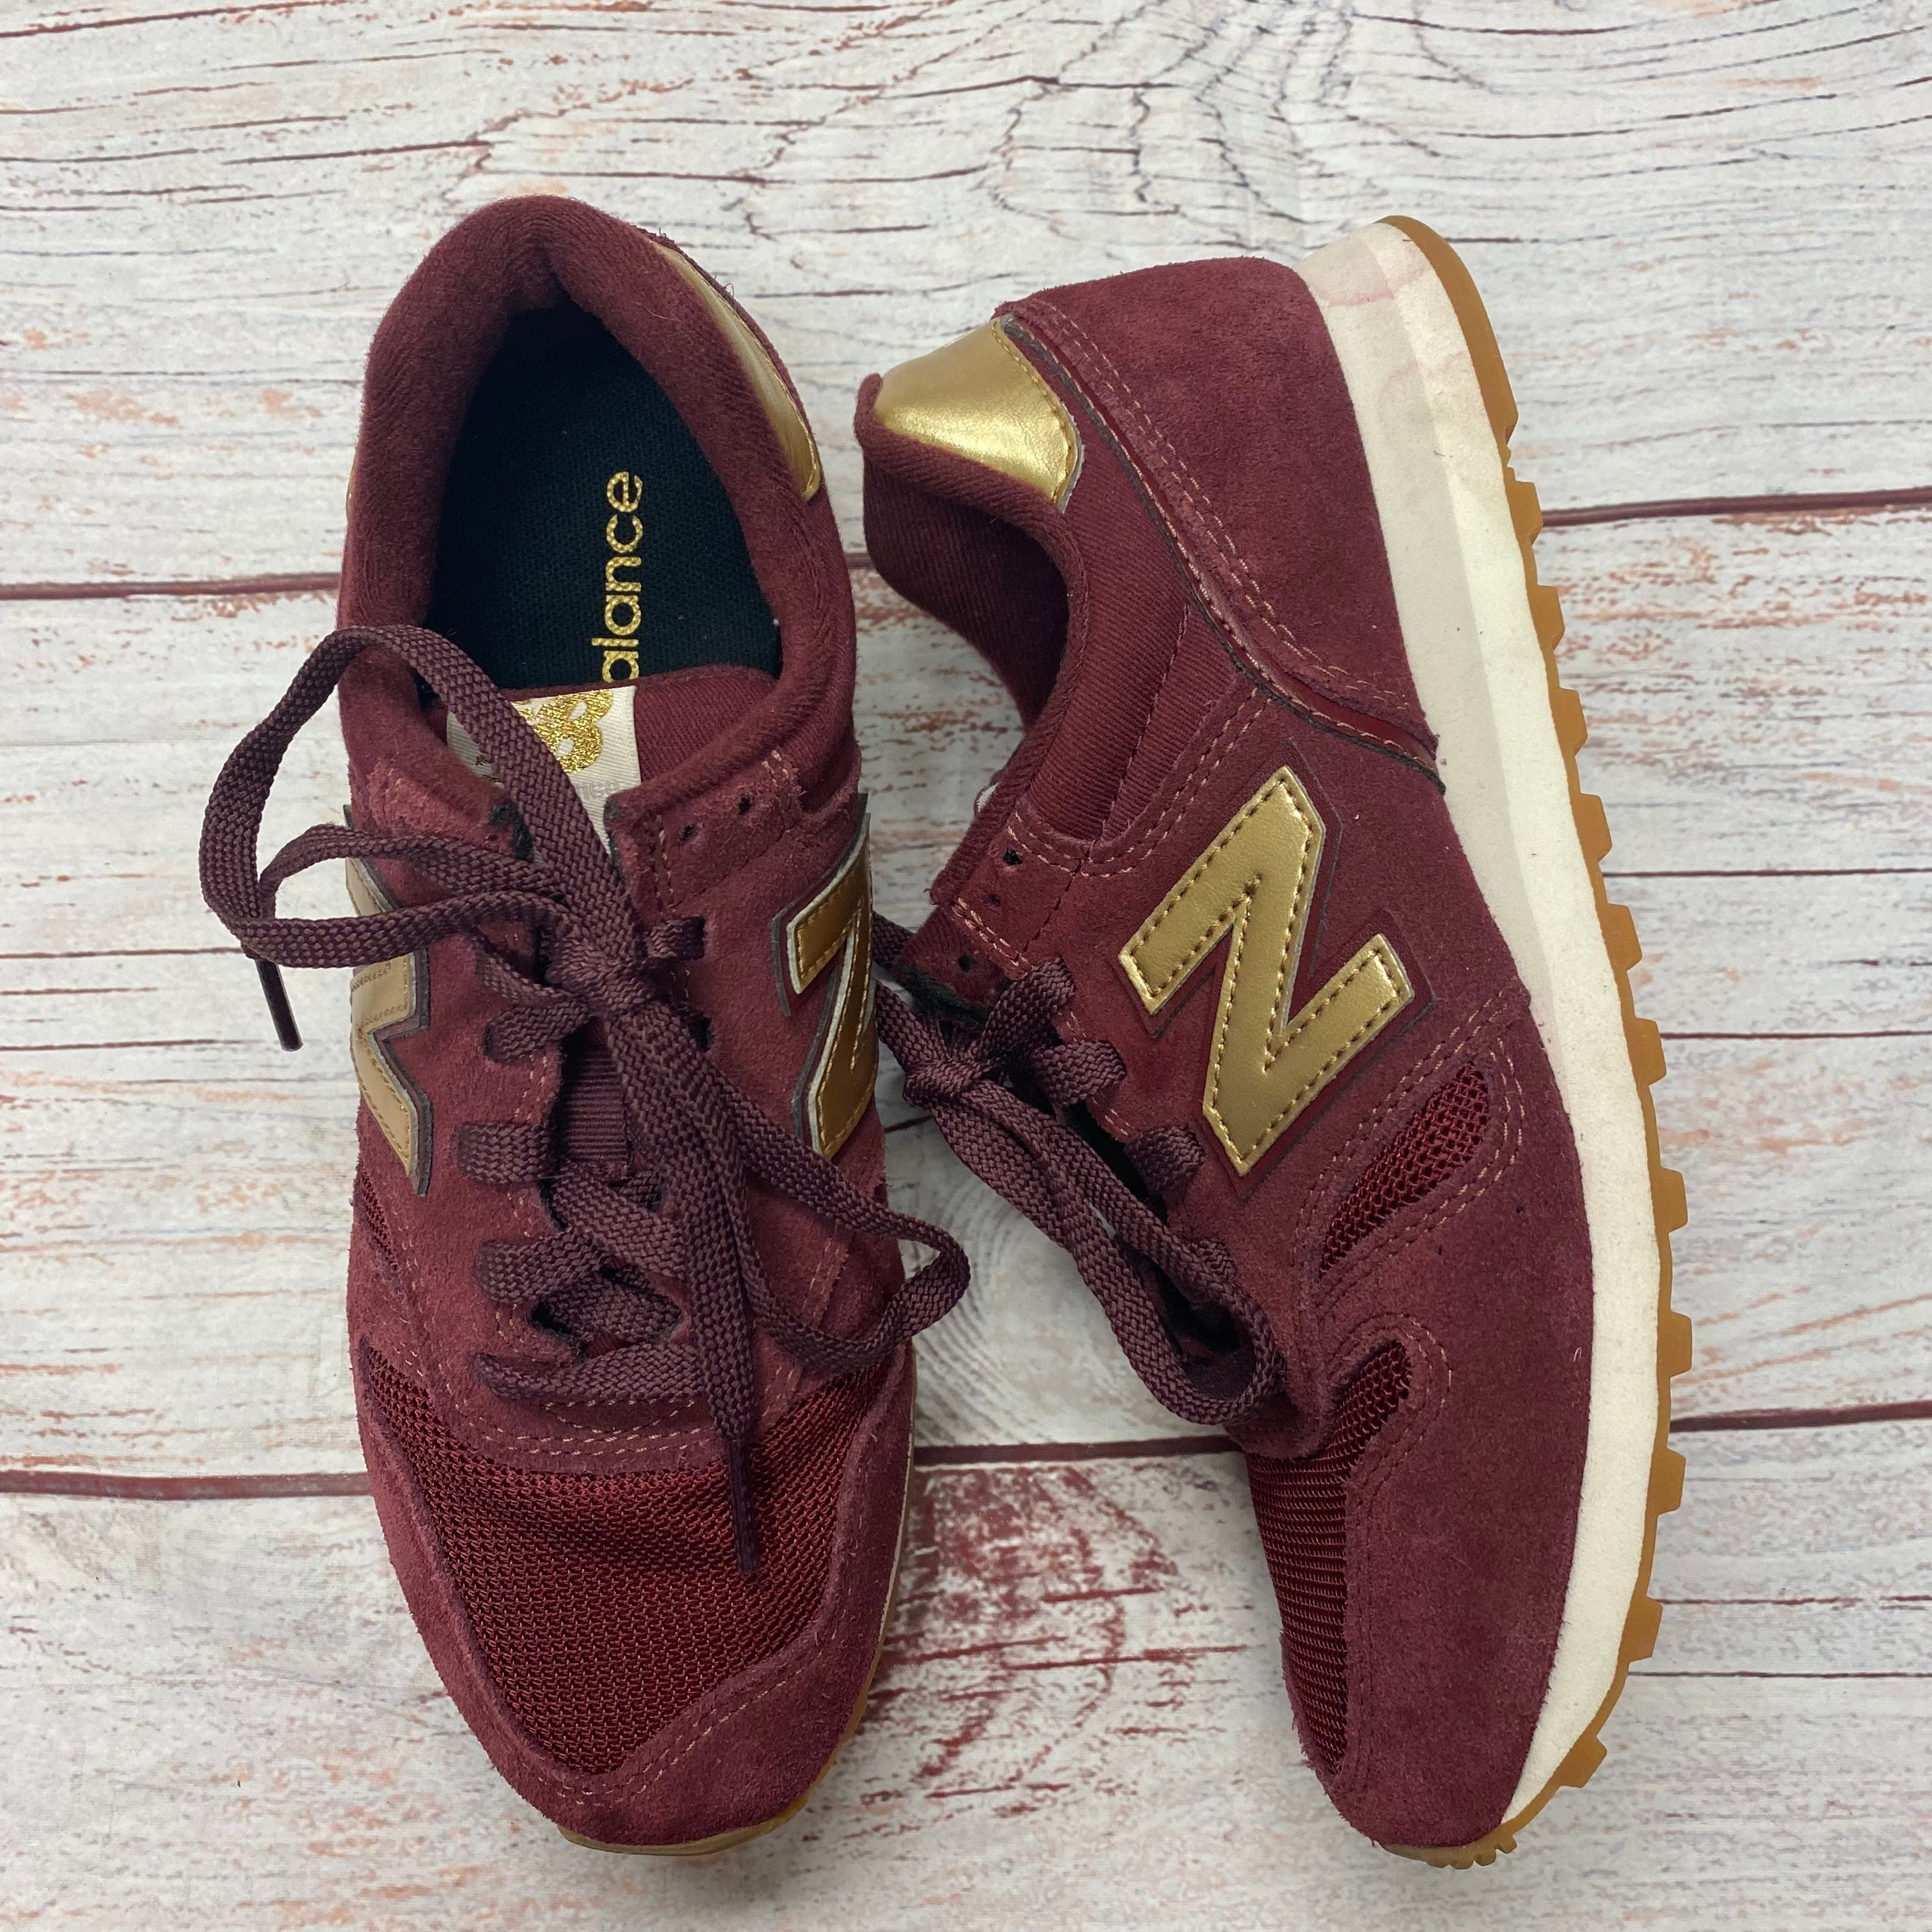 Shoes Athletic By New Balance Size: 5.5 – #257 Clothes Mentor ...